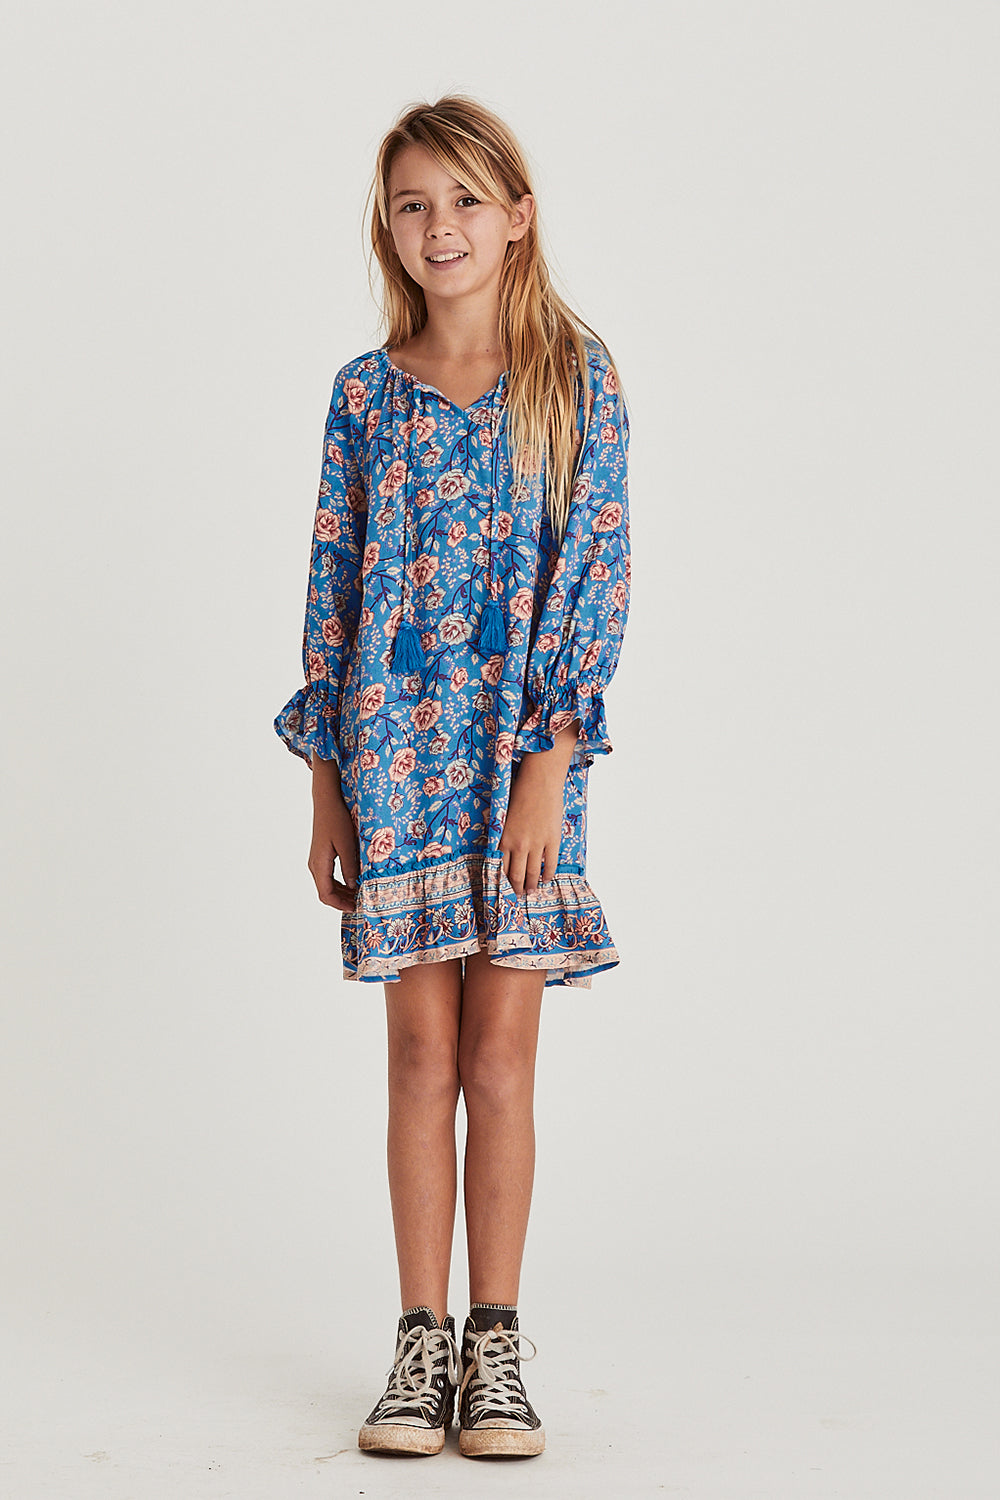 Bella Rosa Littles Dress in Olympia